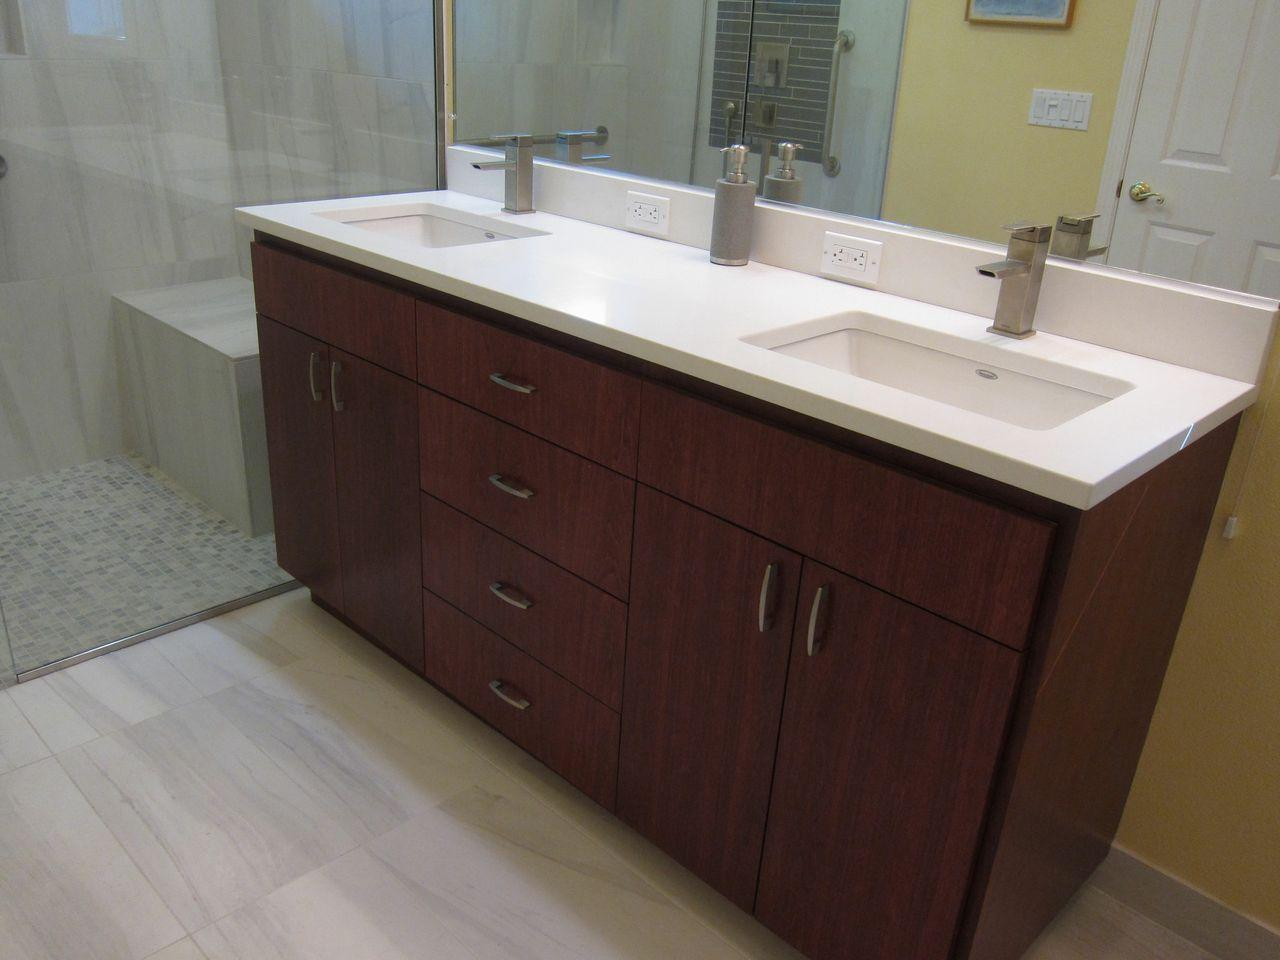 Best Solid Surface Countertops For Bathrooms Solid Surface Countertops Quartz Granite And